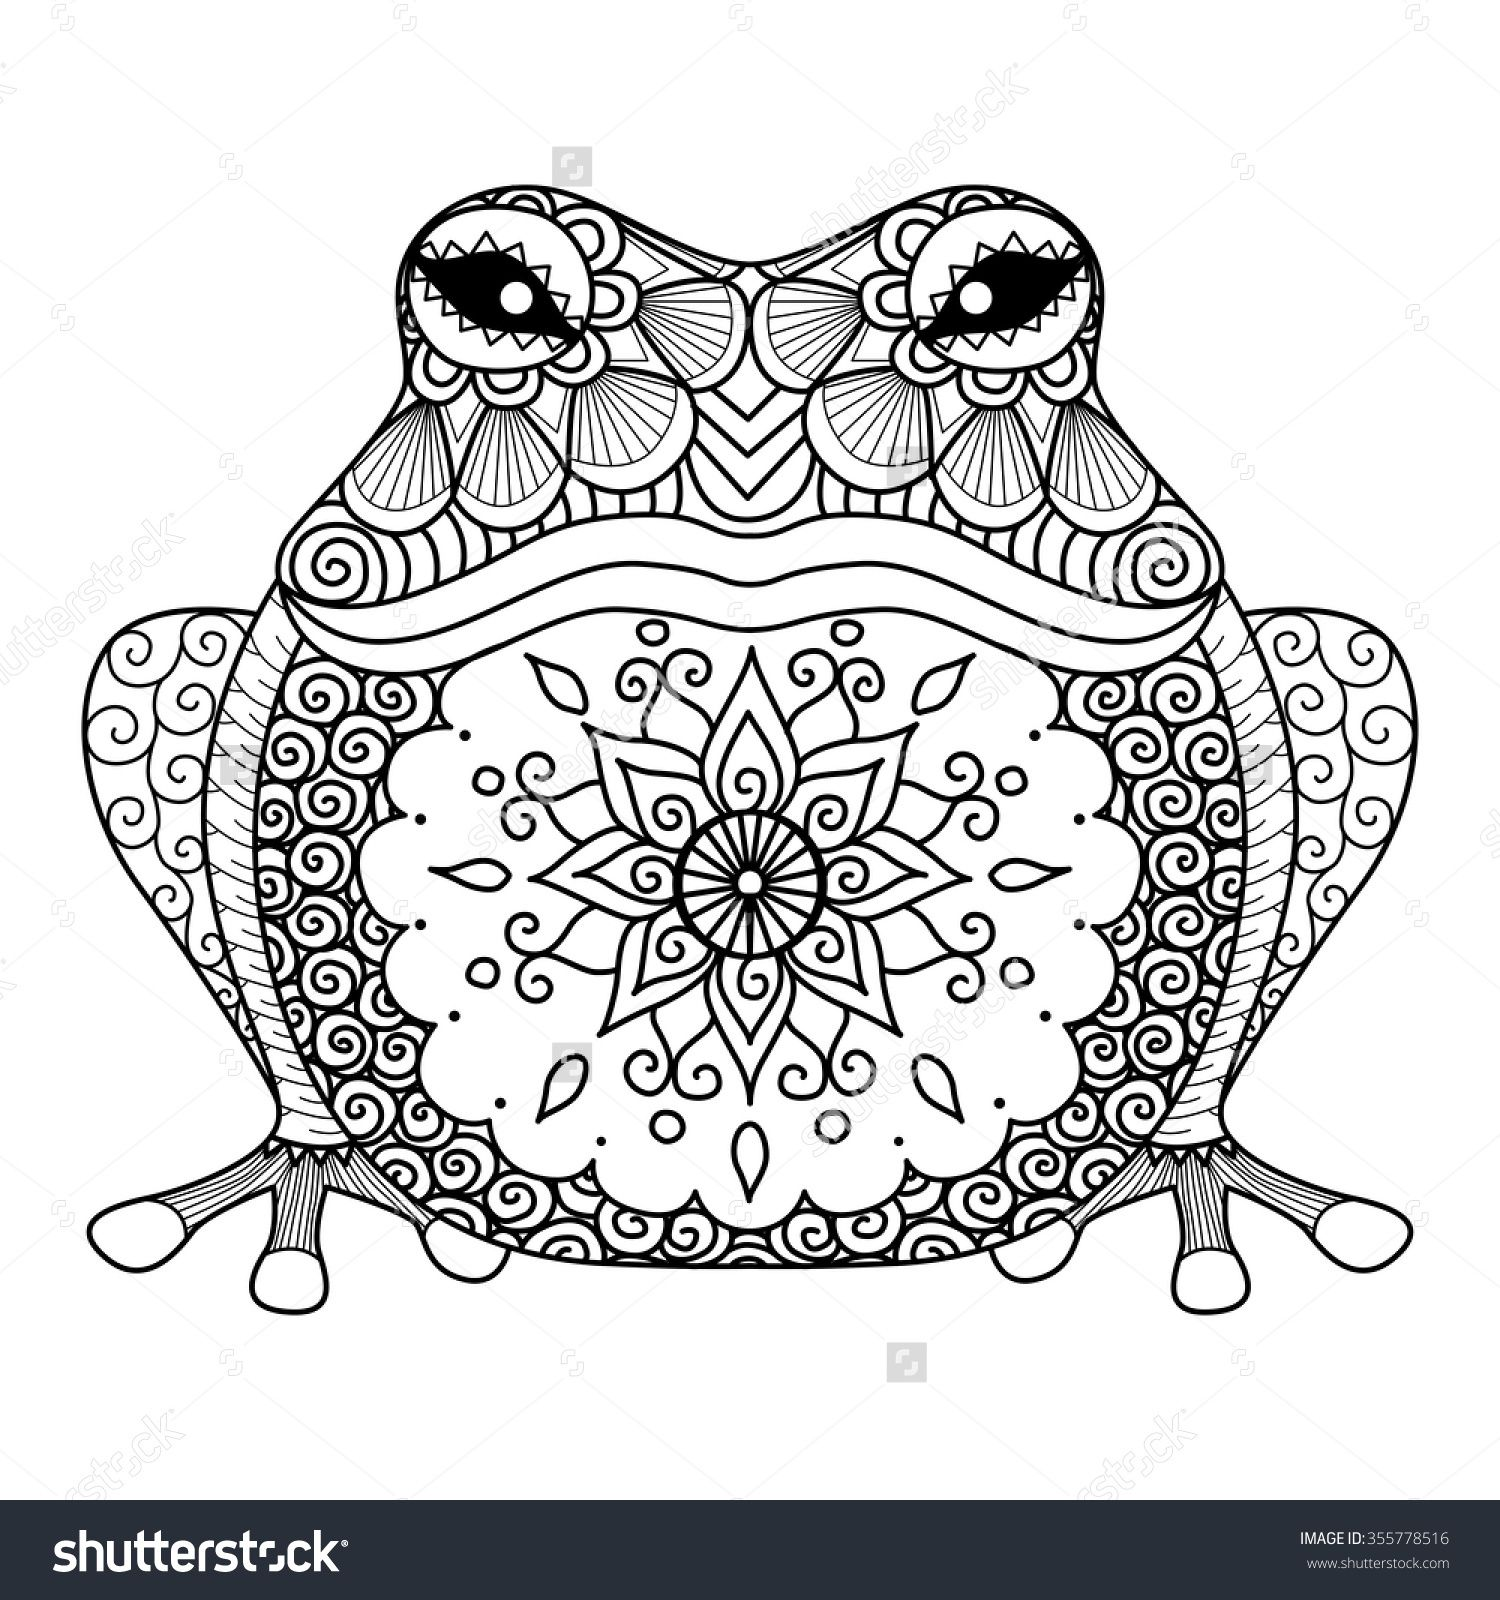 Hand Drawn Zentangle Frog For Coloring Book For Adult Shirt